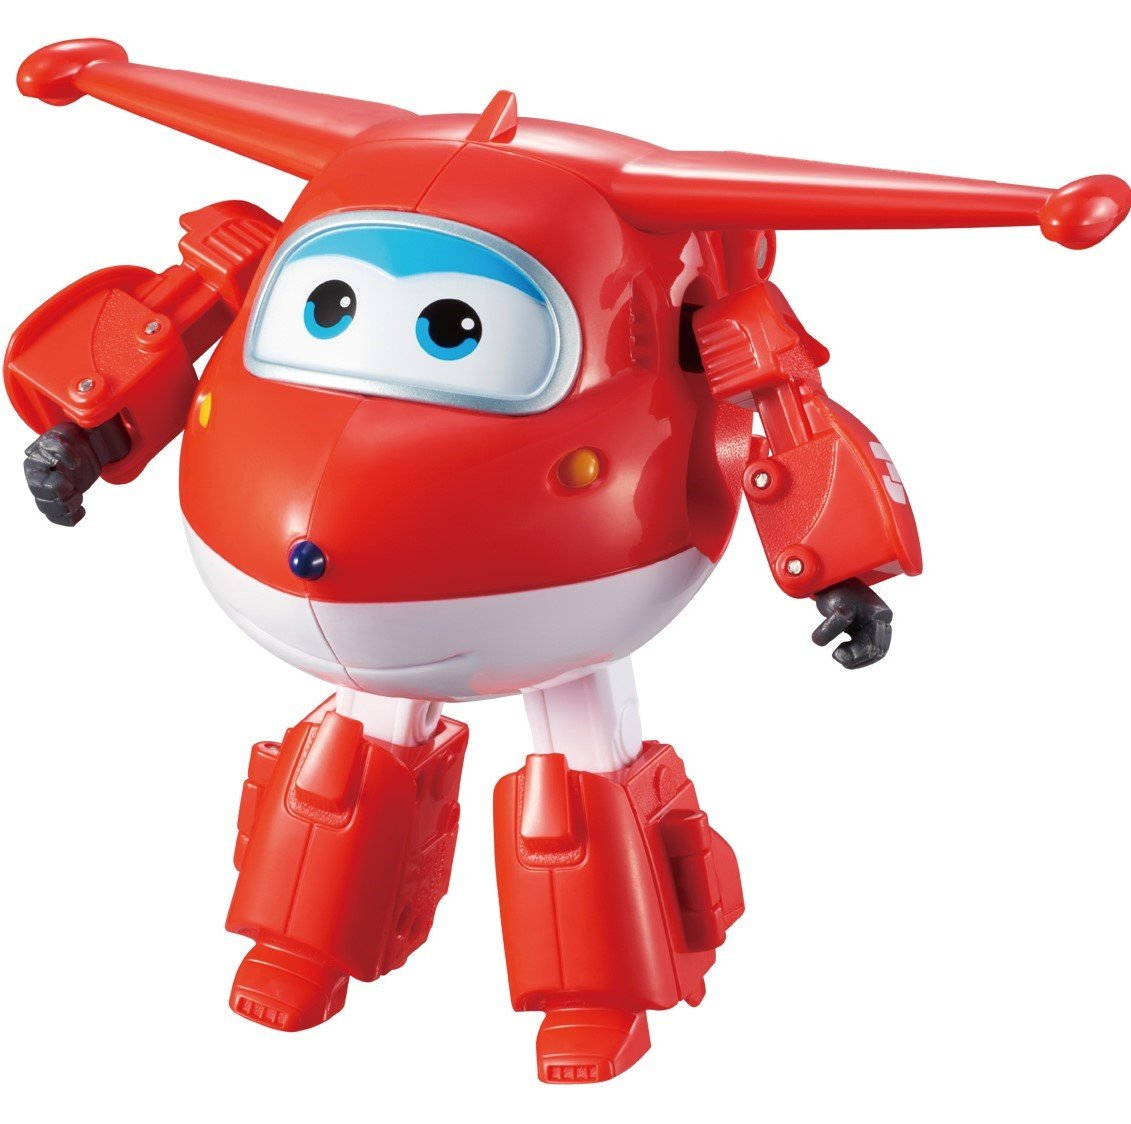 "Super Wings - Transforming Jett Toy Figure | Plane | Bot | 5"" Scale Auldey (Domestic) US710210"